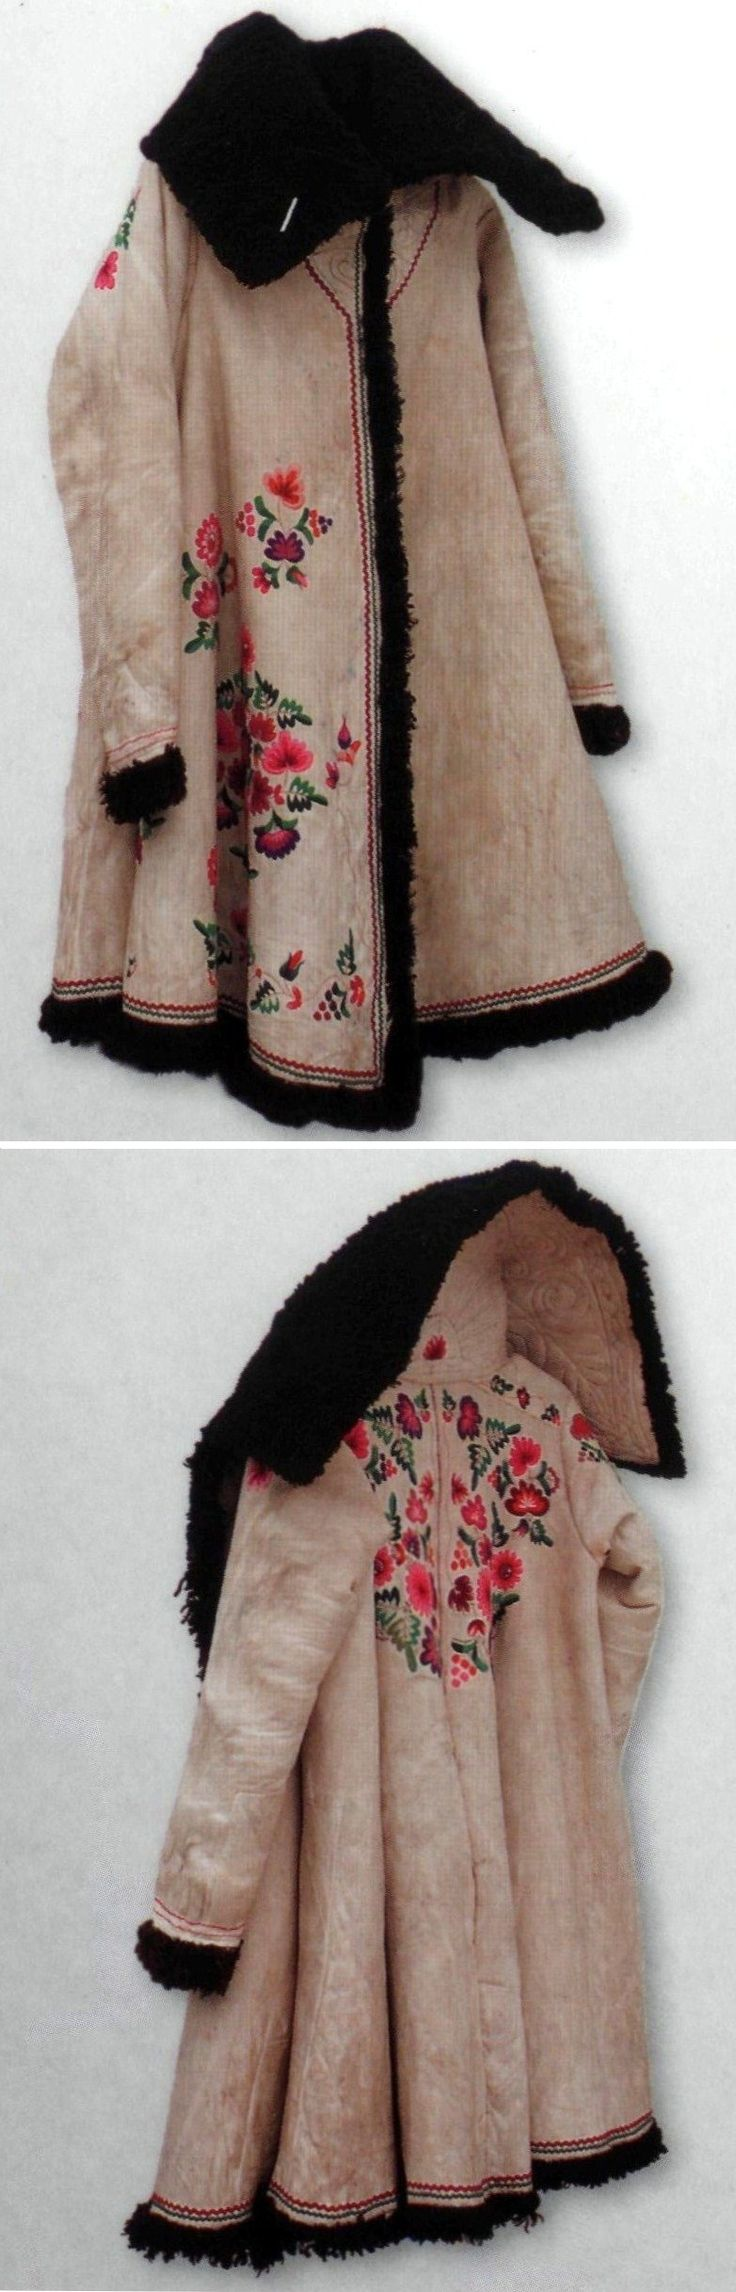 Winter coat of a Russian peasant woman. Fur sheepskin; embroidery. 19th century.